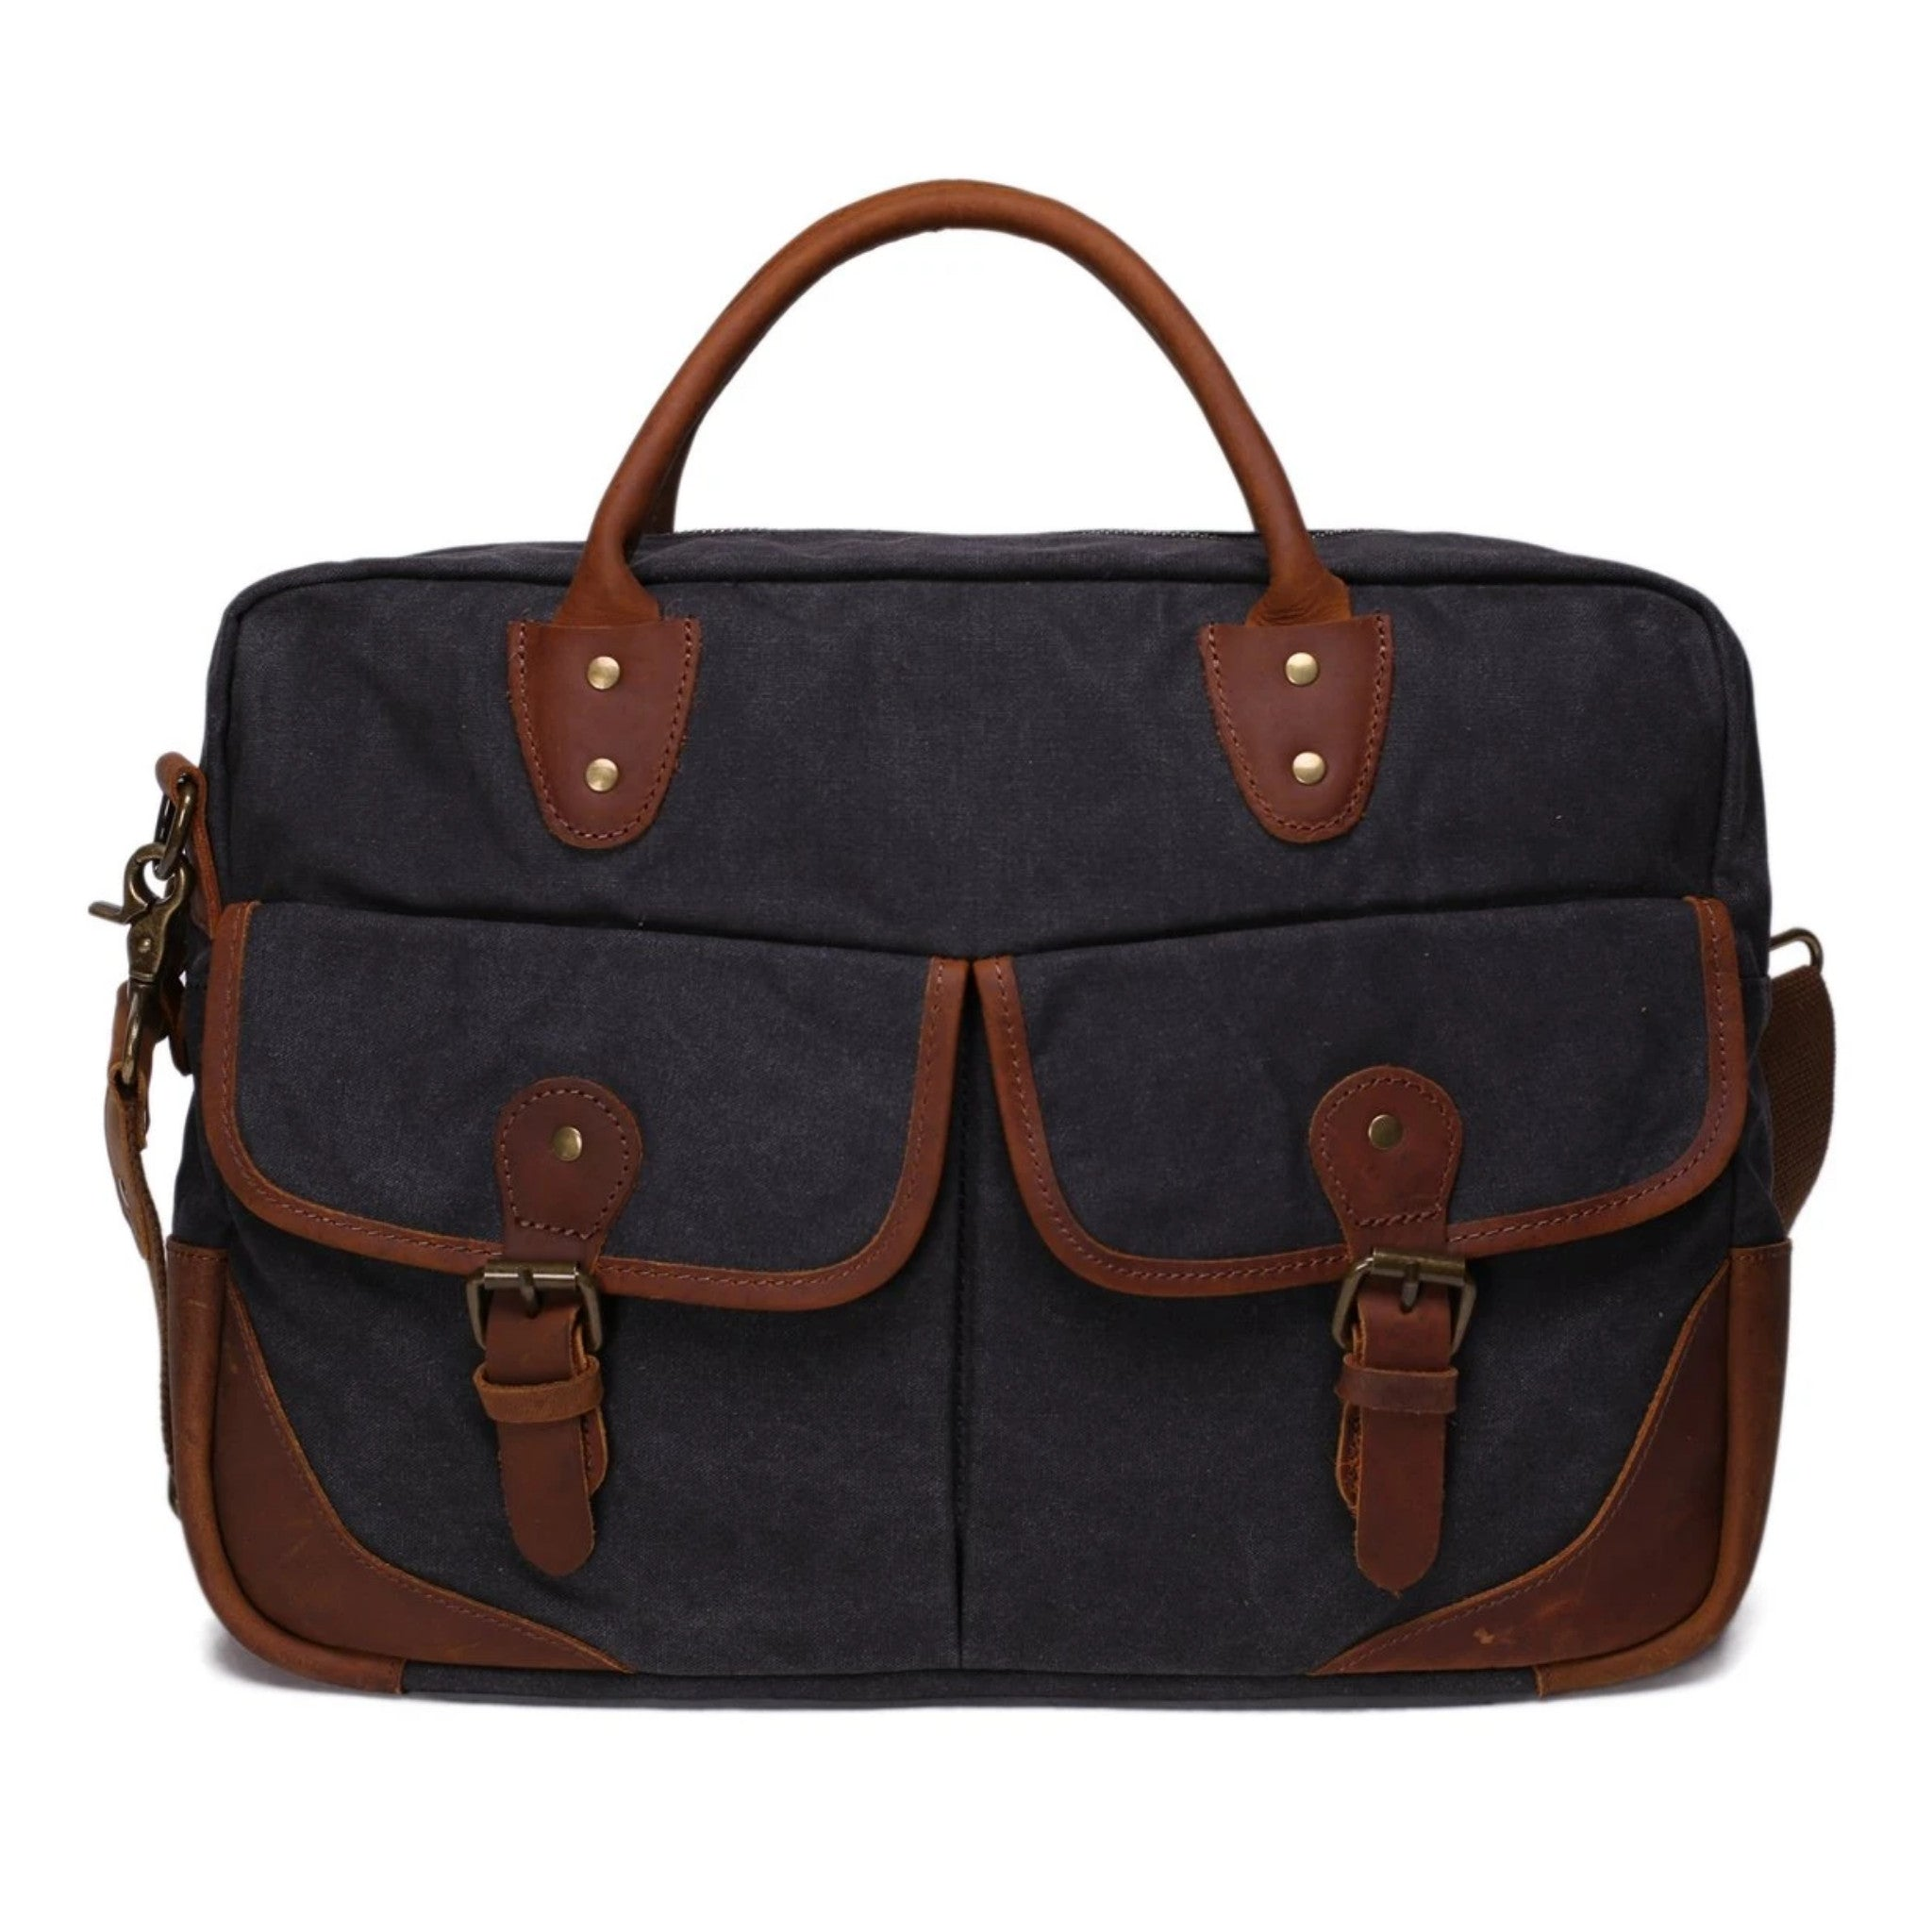 Waxed Canvas With Leather Trim Briefcase Satchel Messenger Bag - Blue Sebe Handmade Leather Bags